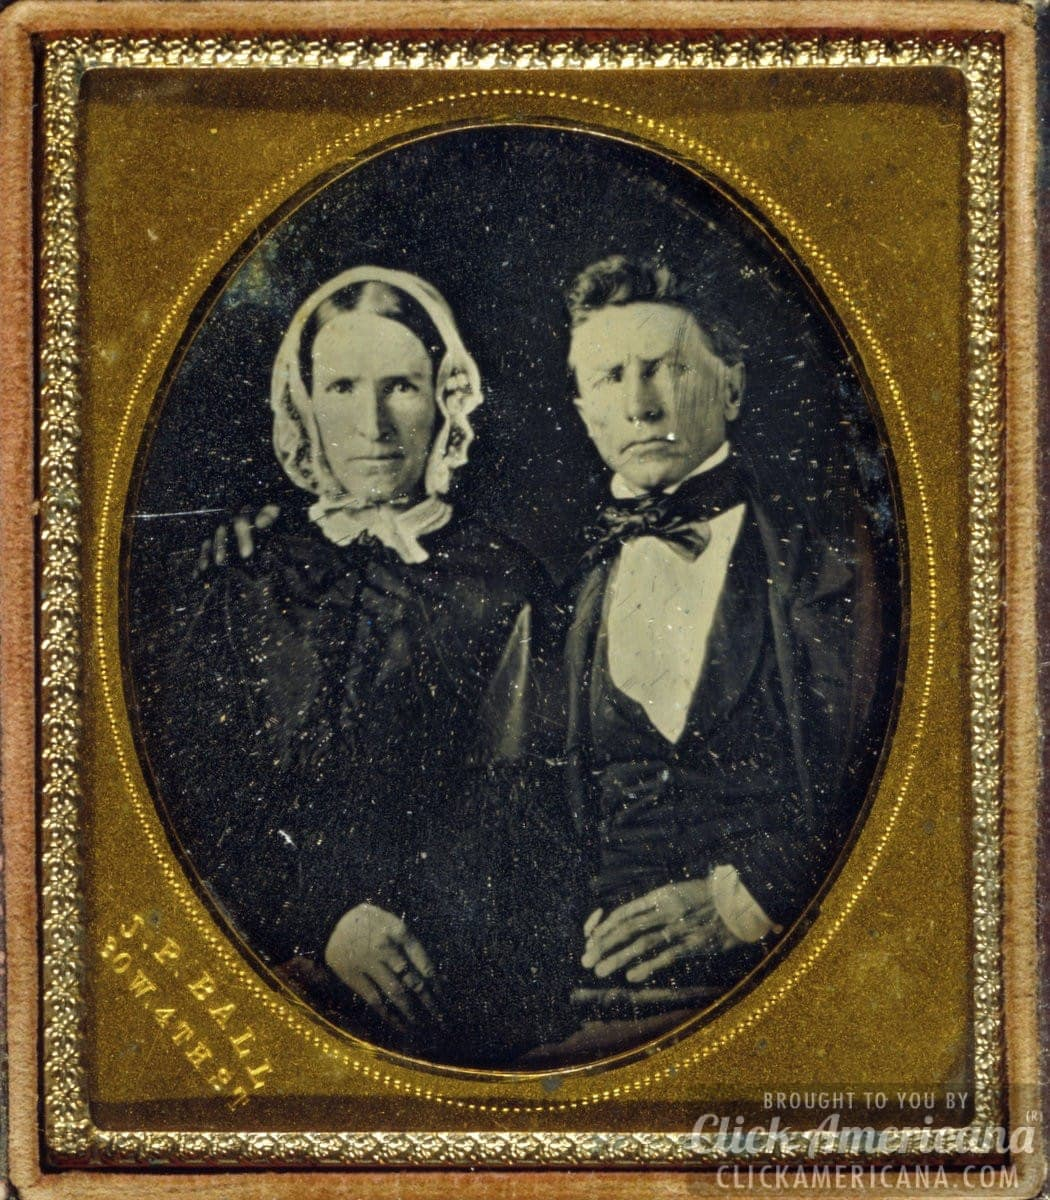 Antique photo of a stern-looking couple -- likely a husband and wife.